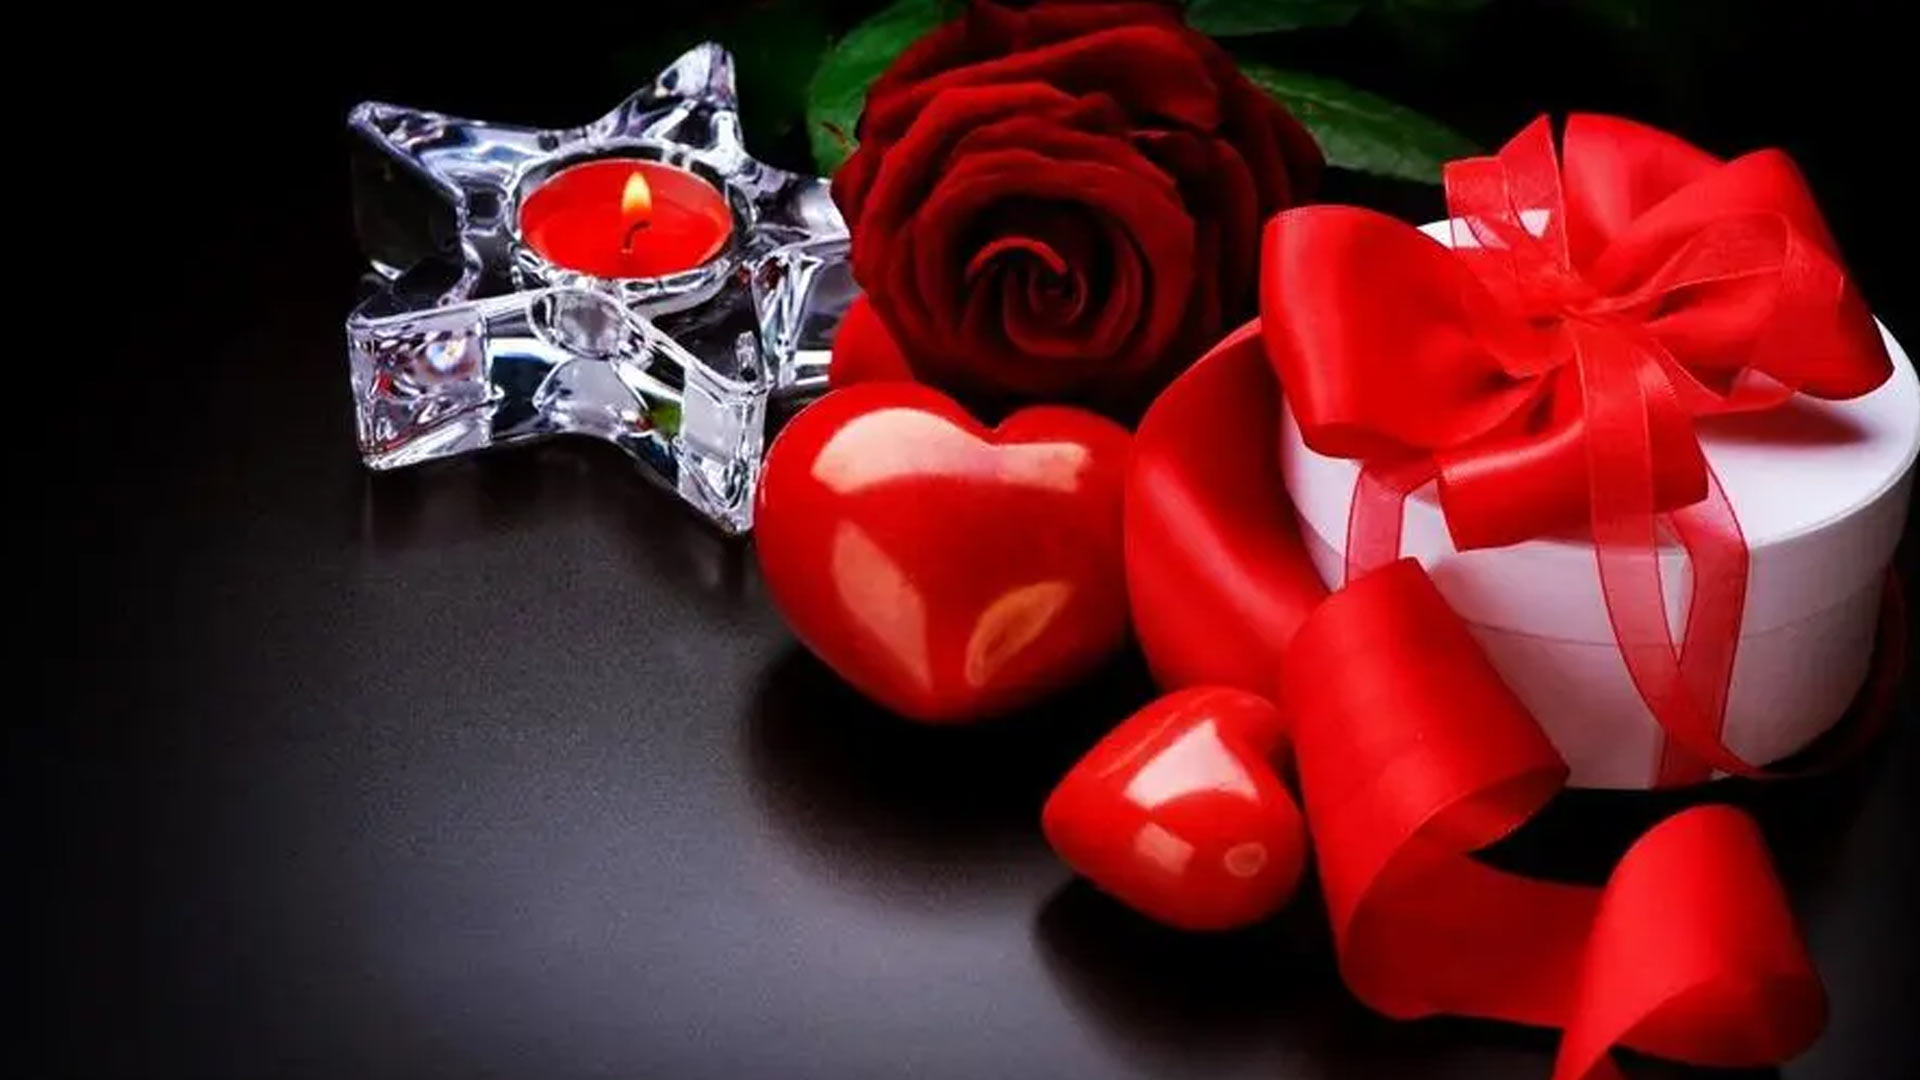 PERFECT GIFTING IDEAS FOR A MEMORABLE VALENTINE'S DAY